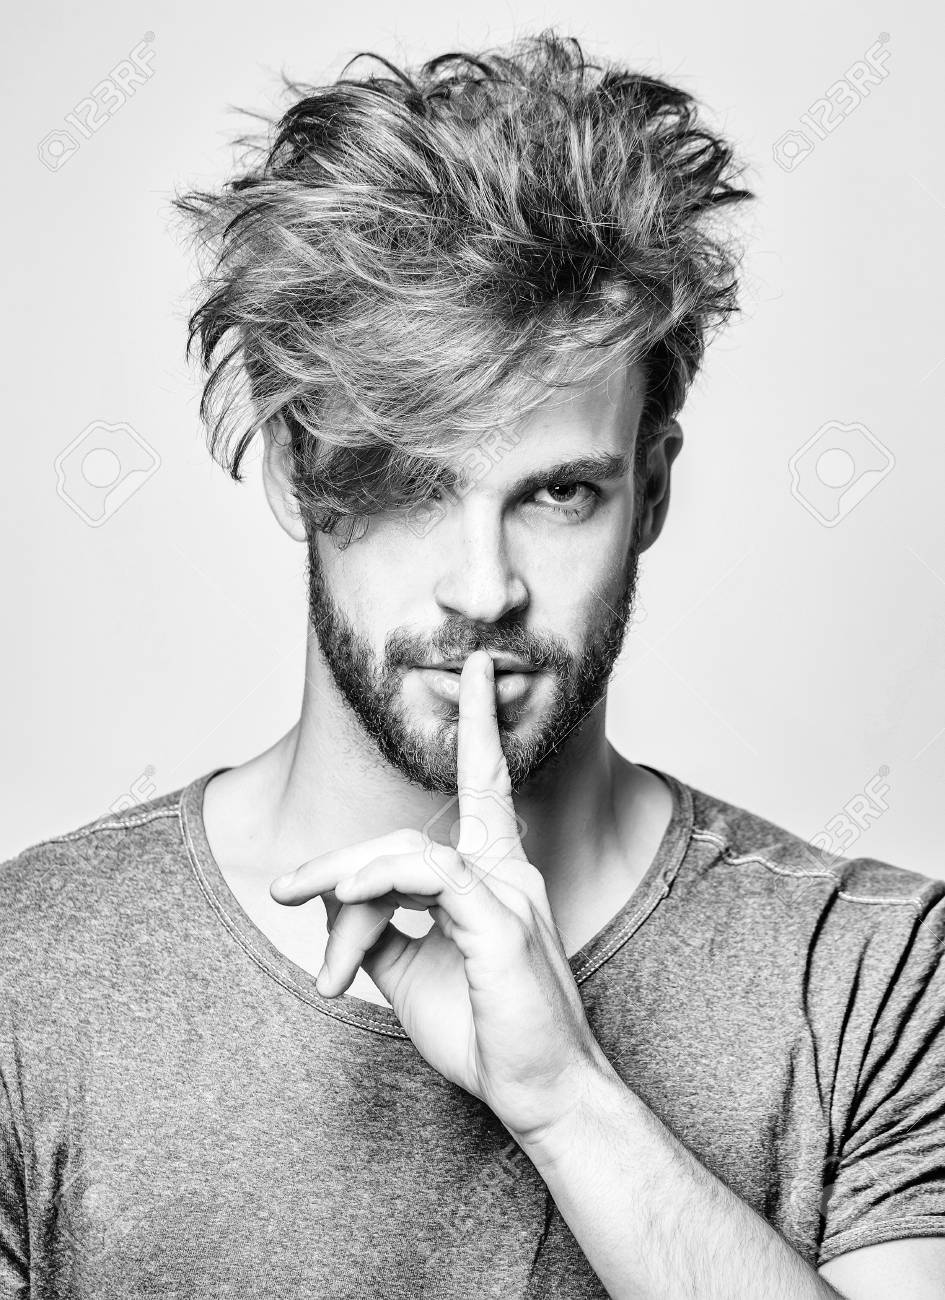 Tattooed Man With A Beard Love His Hair Too Men S Style Bearded Styles And Tattoo